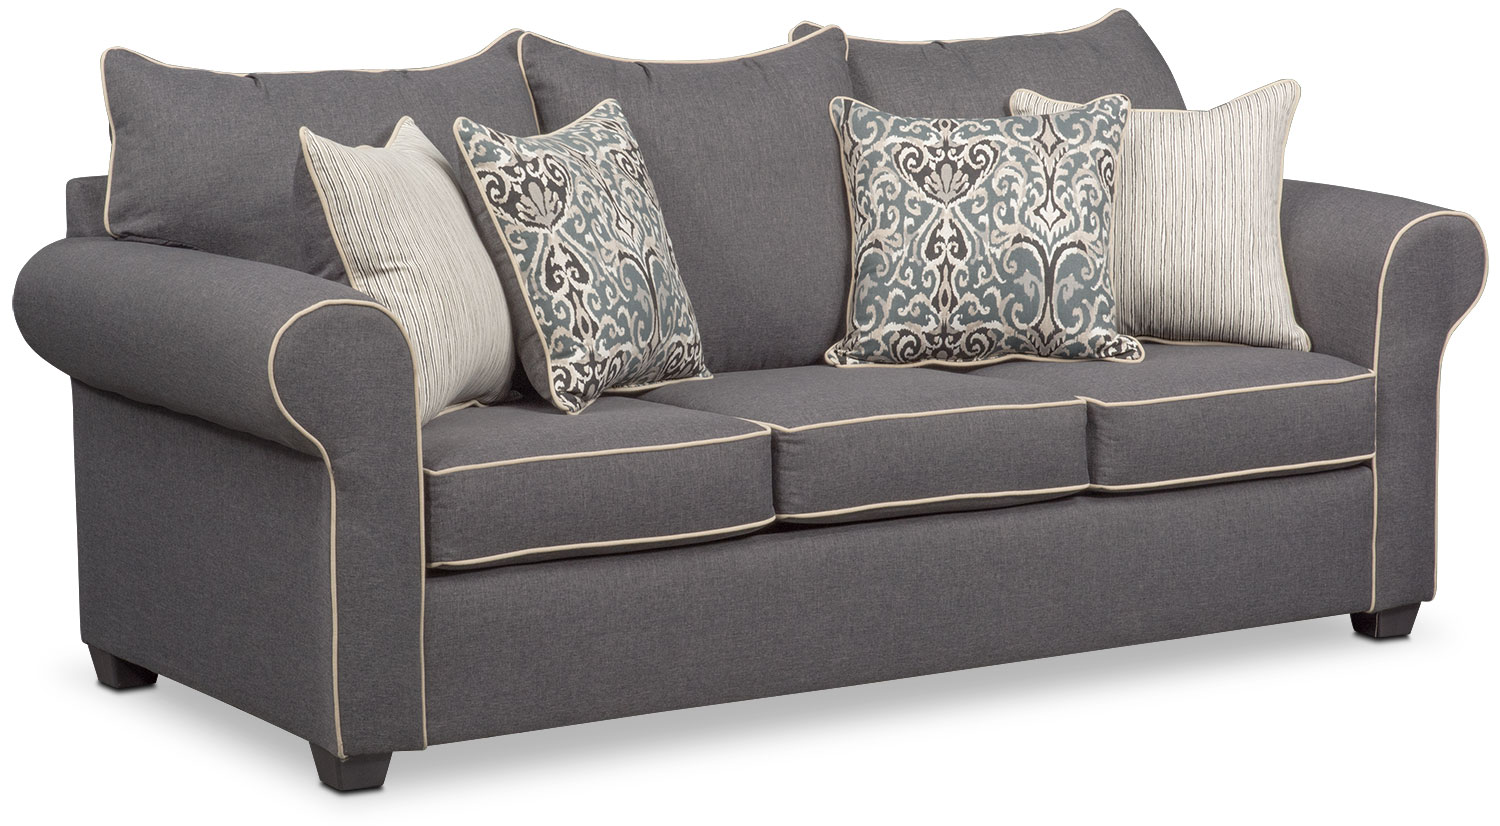 Carla Queen Memory Foam Sleeper Sofa - Gray | Value City Furniture